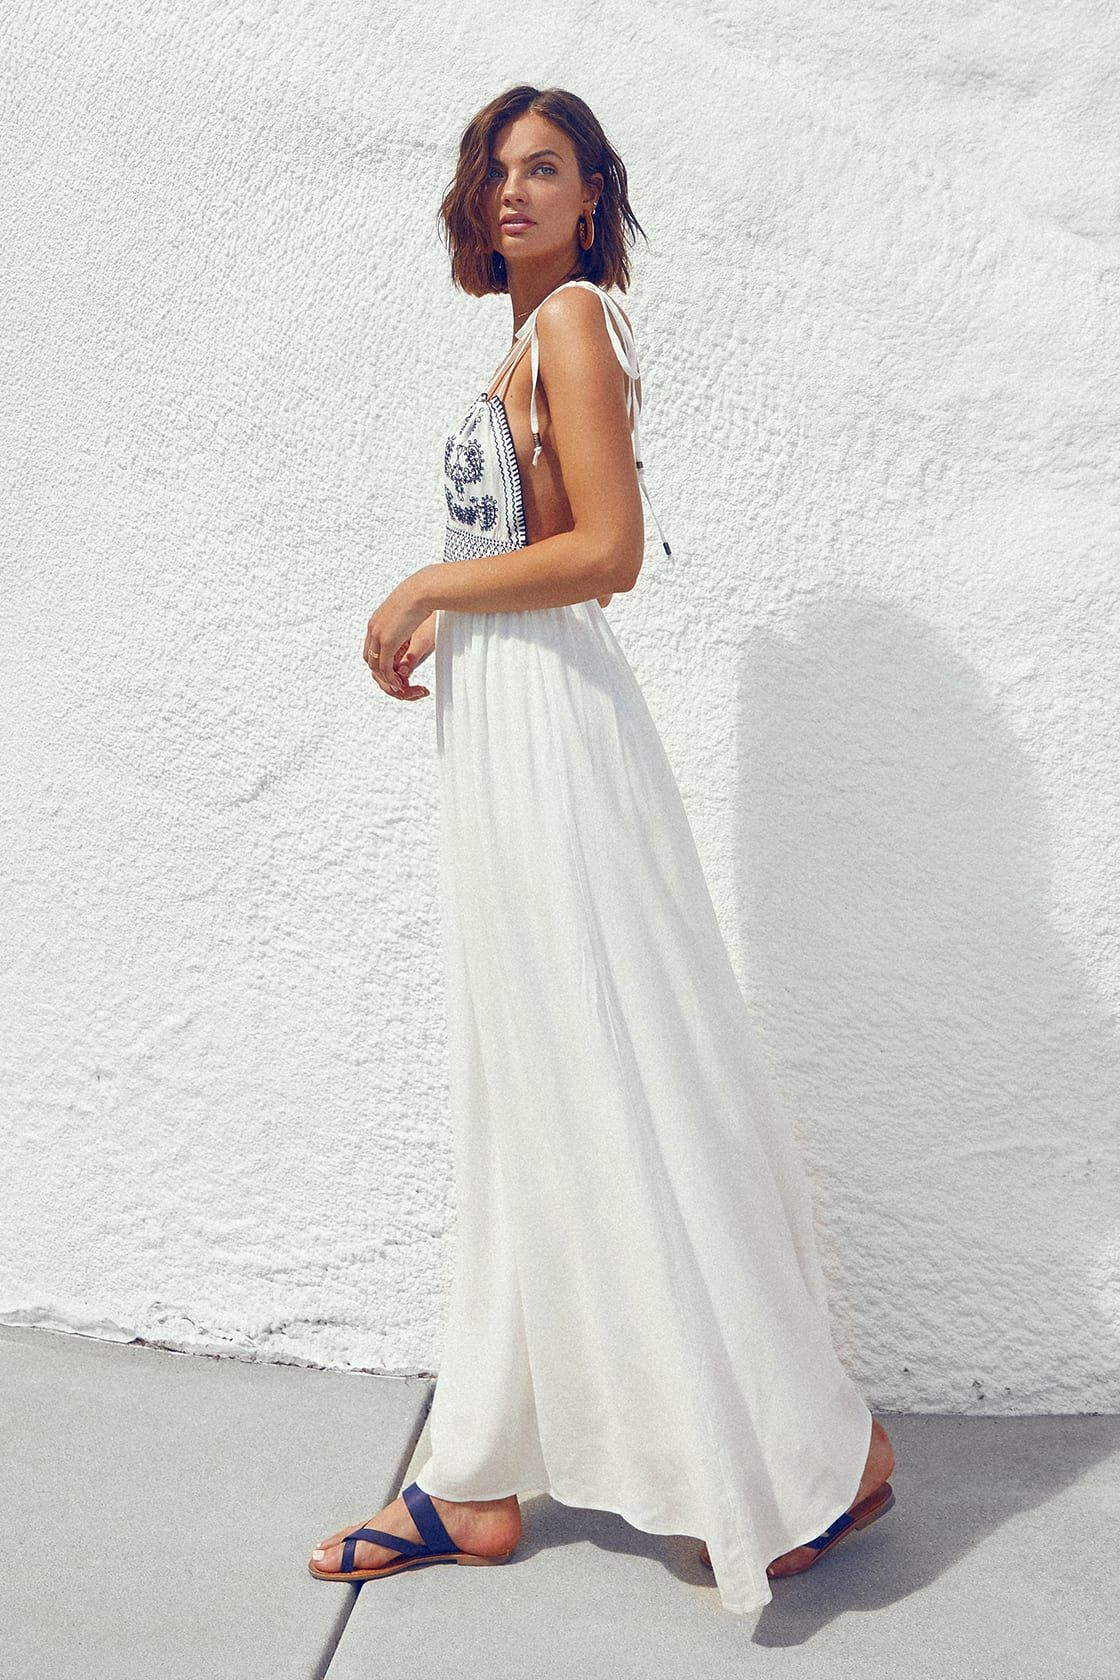 Days of Sunlight Ivory Embroidered Maxi Dress | White dresses for ...